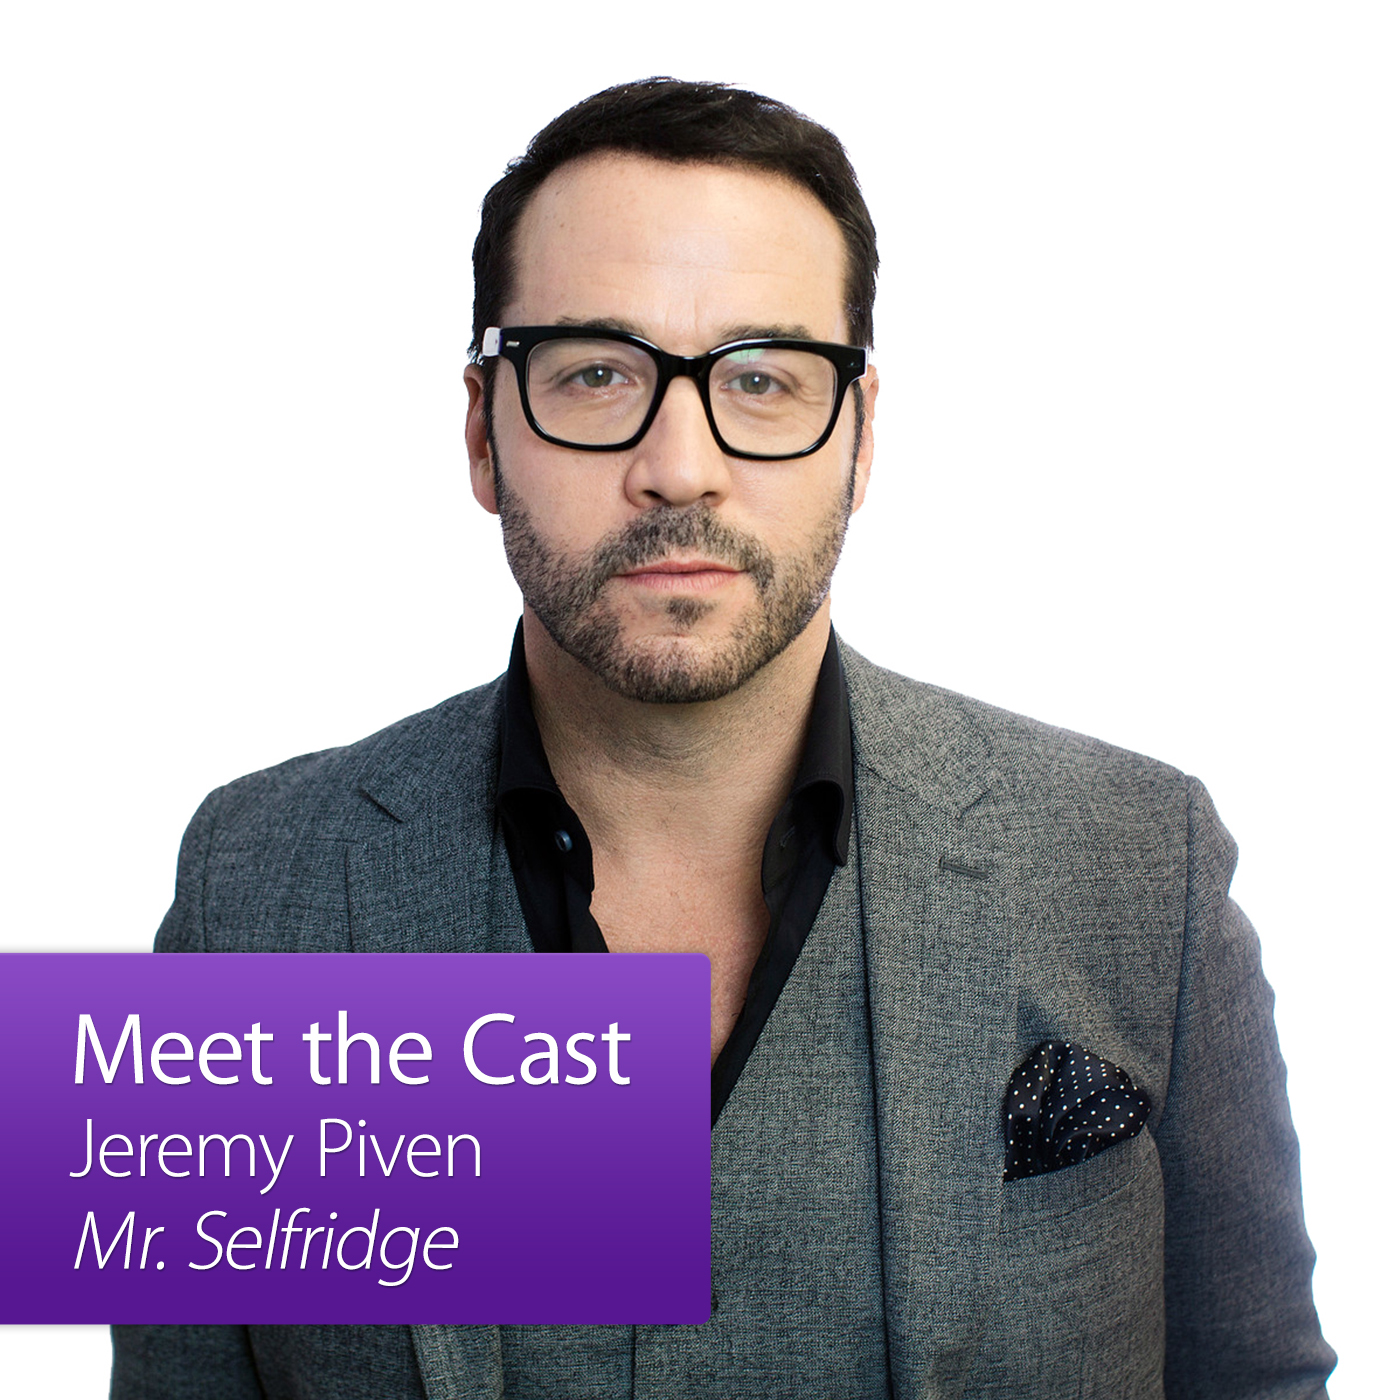 Mr. Selfridge: Meet The Cast